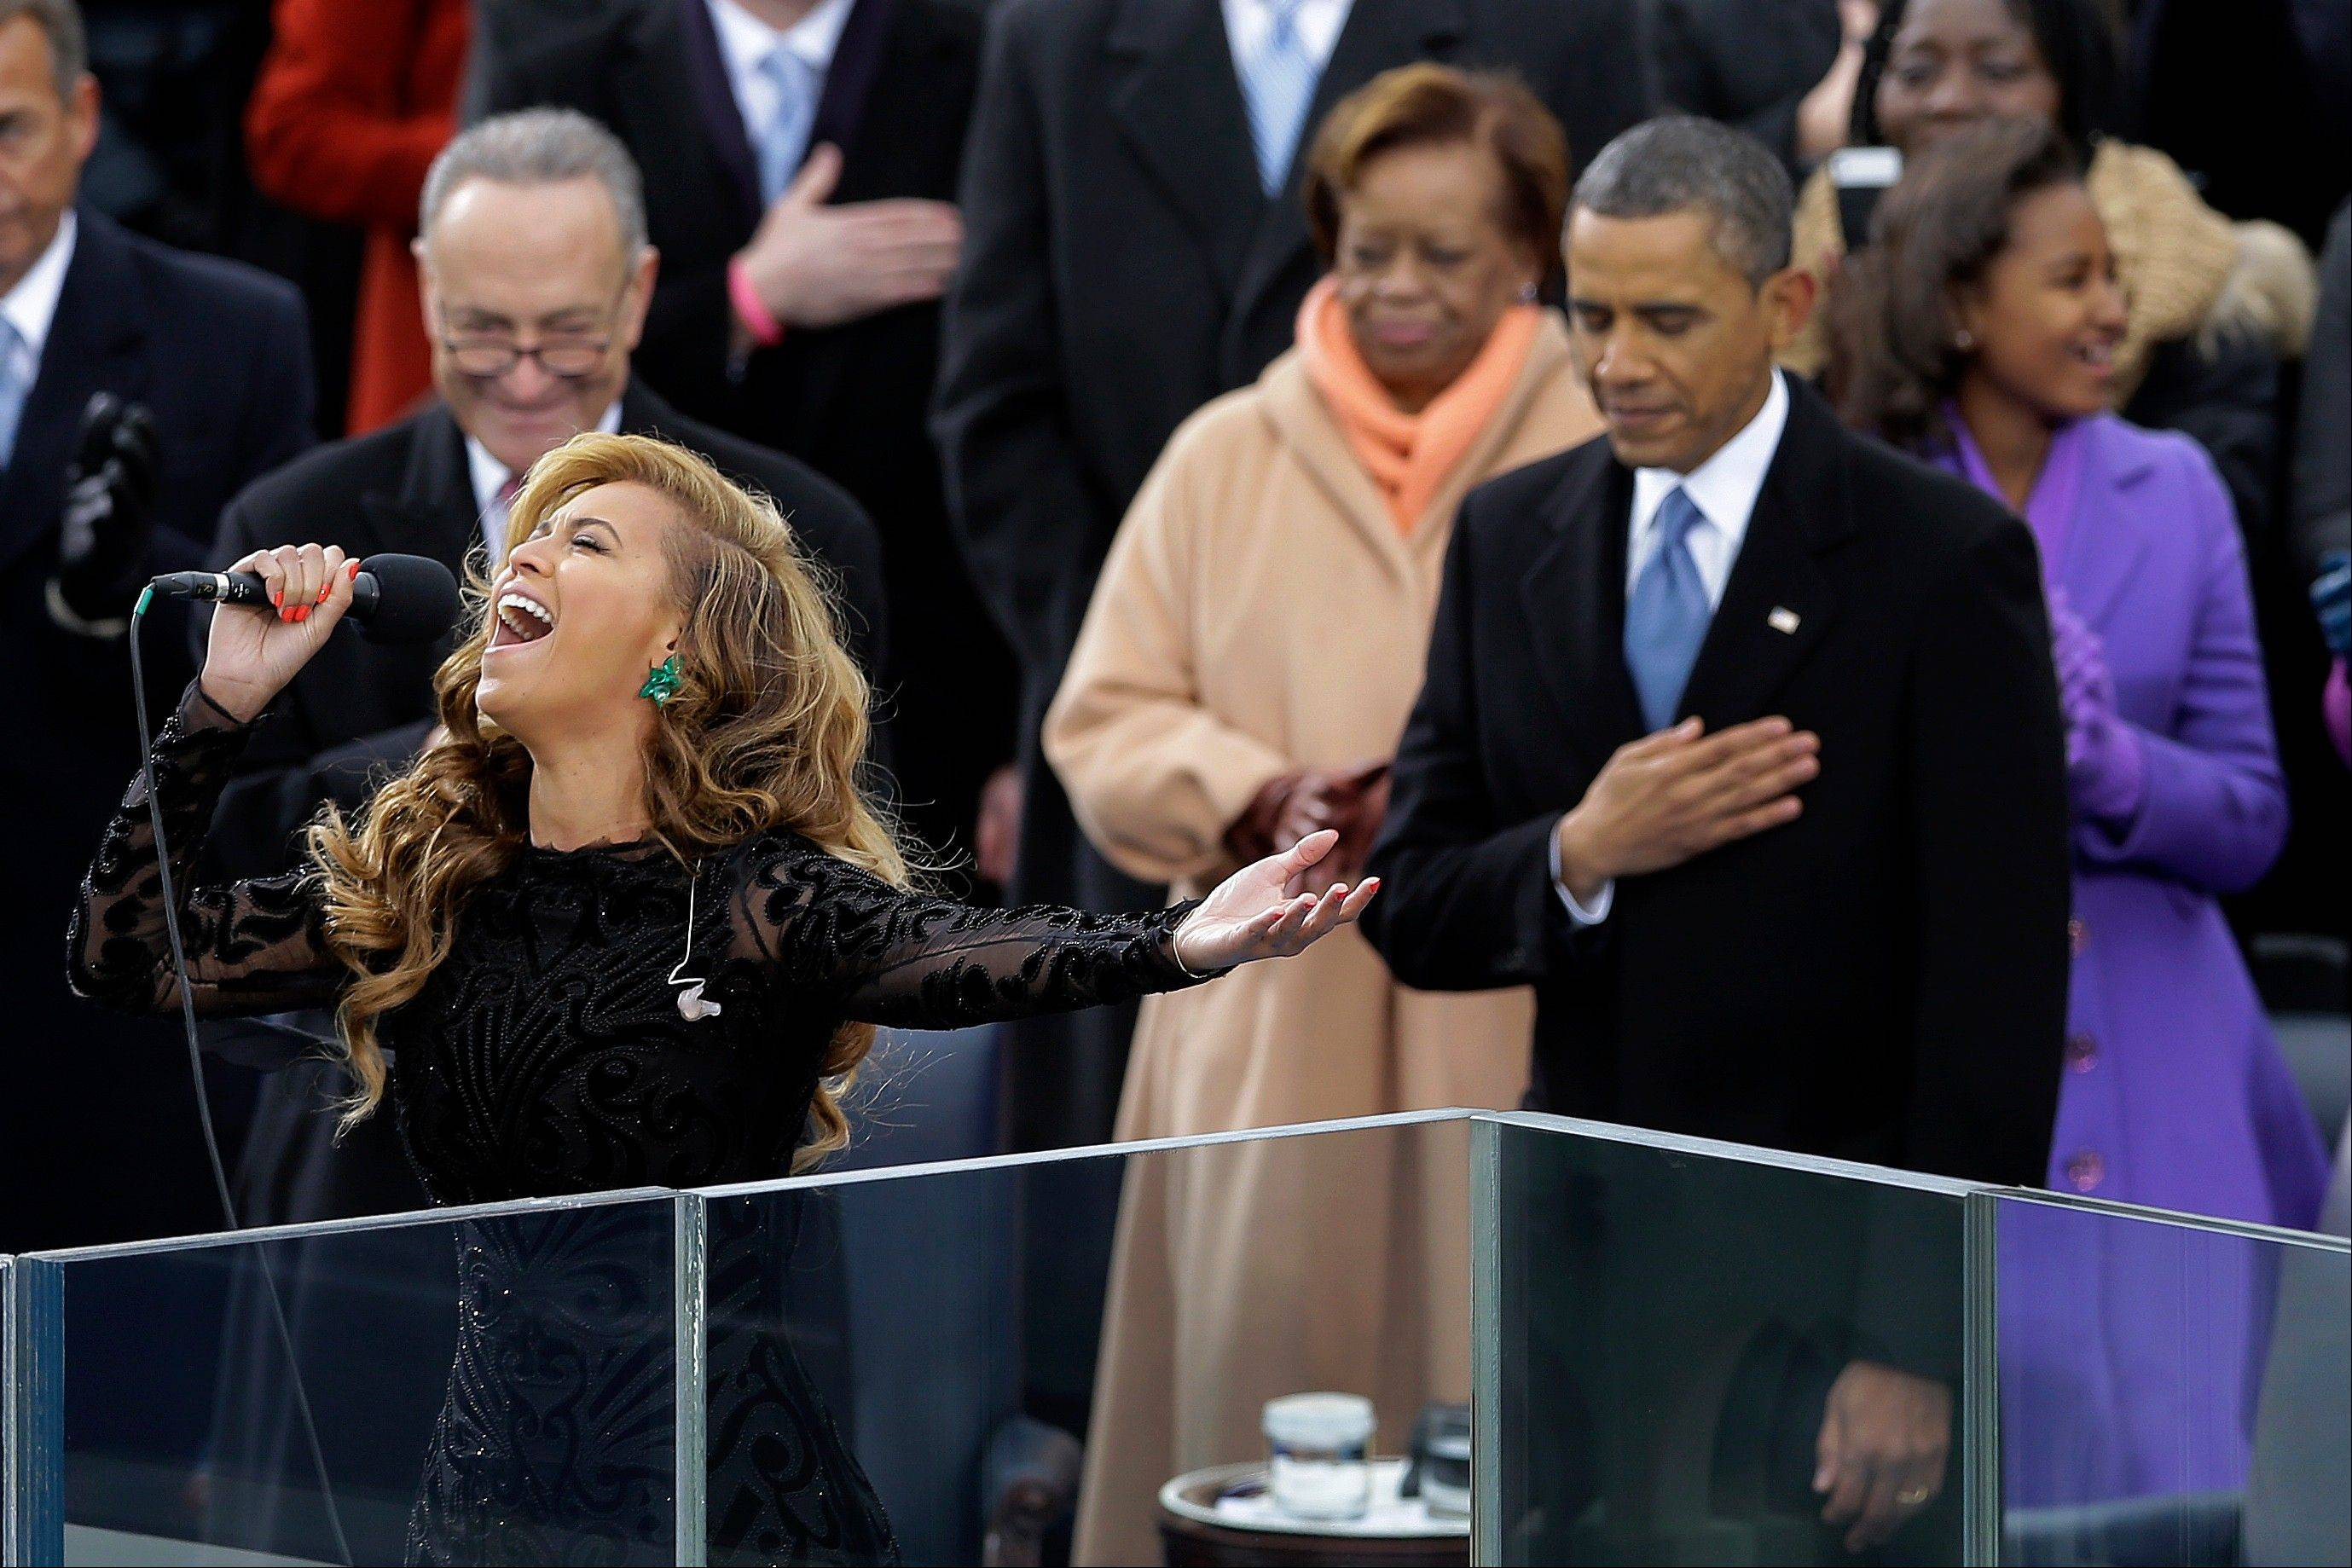 Whether Beyonc� actually sang at the inauguration of President Barack Obama is a tempest in a teapot, but dig deeper and it reveals something about American society at this moment. In small ways, we seem to be constantly learning that the things we see and experience aren't exactly what they're billed to be -- and that we may not care all that much.